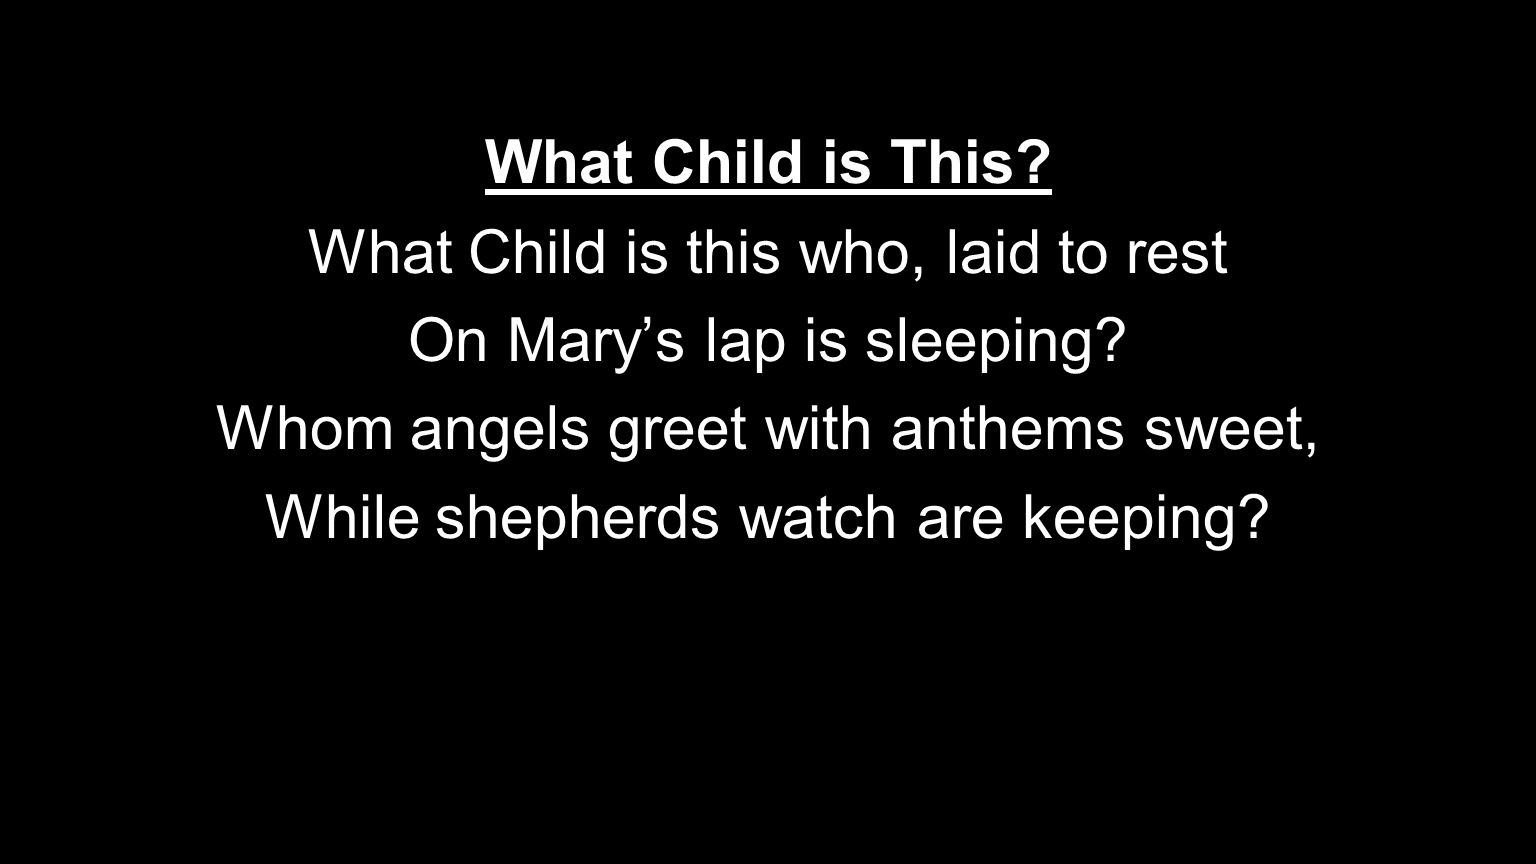 What Child is This? What Child is this who, laid to rest On Mary's lap is sleeping? Whom angels greet with anthems sweet, While shepherds watch are ke